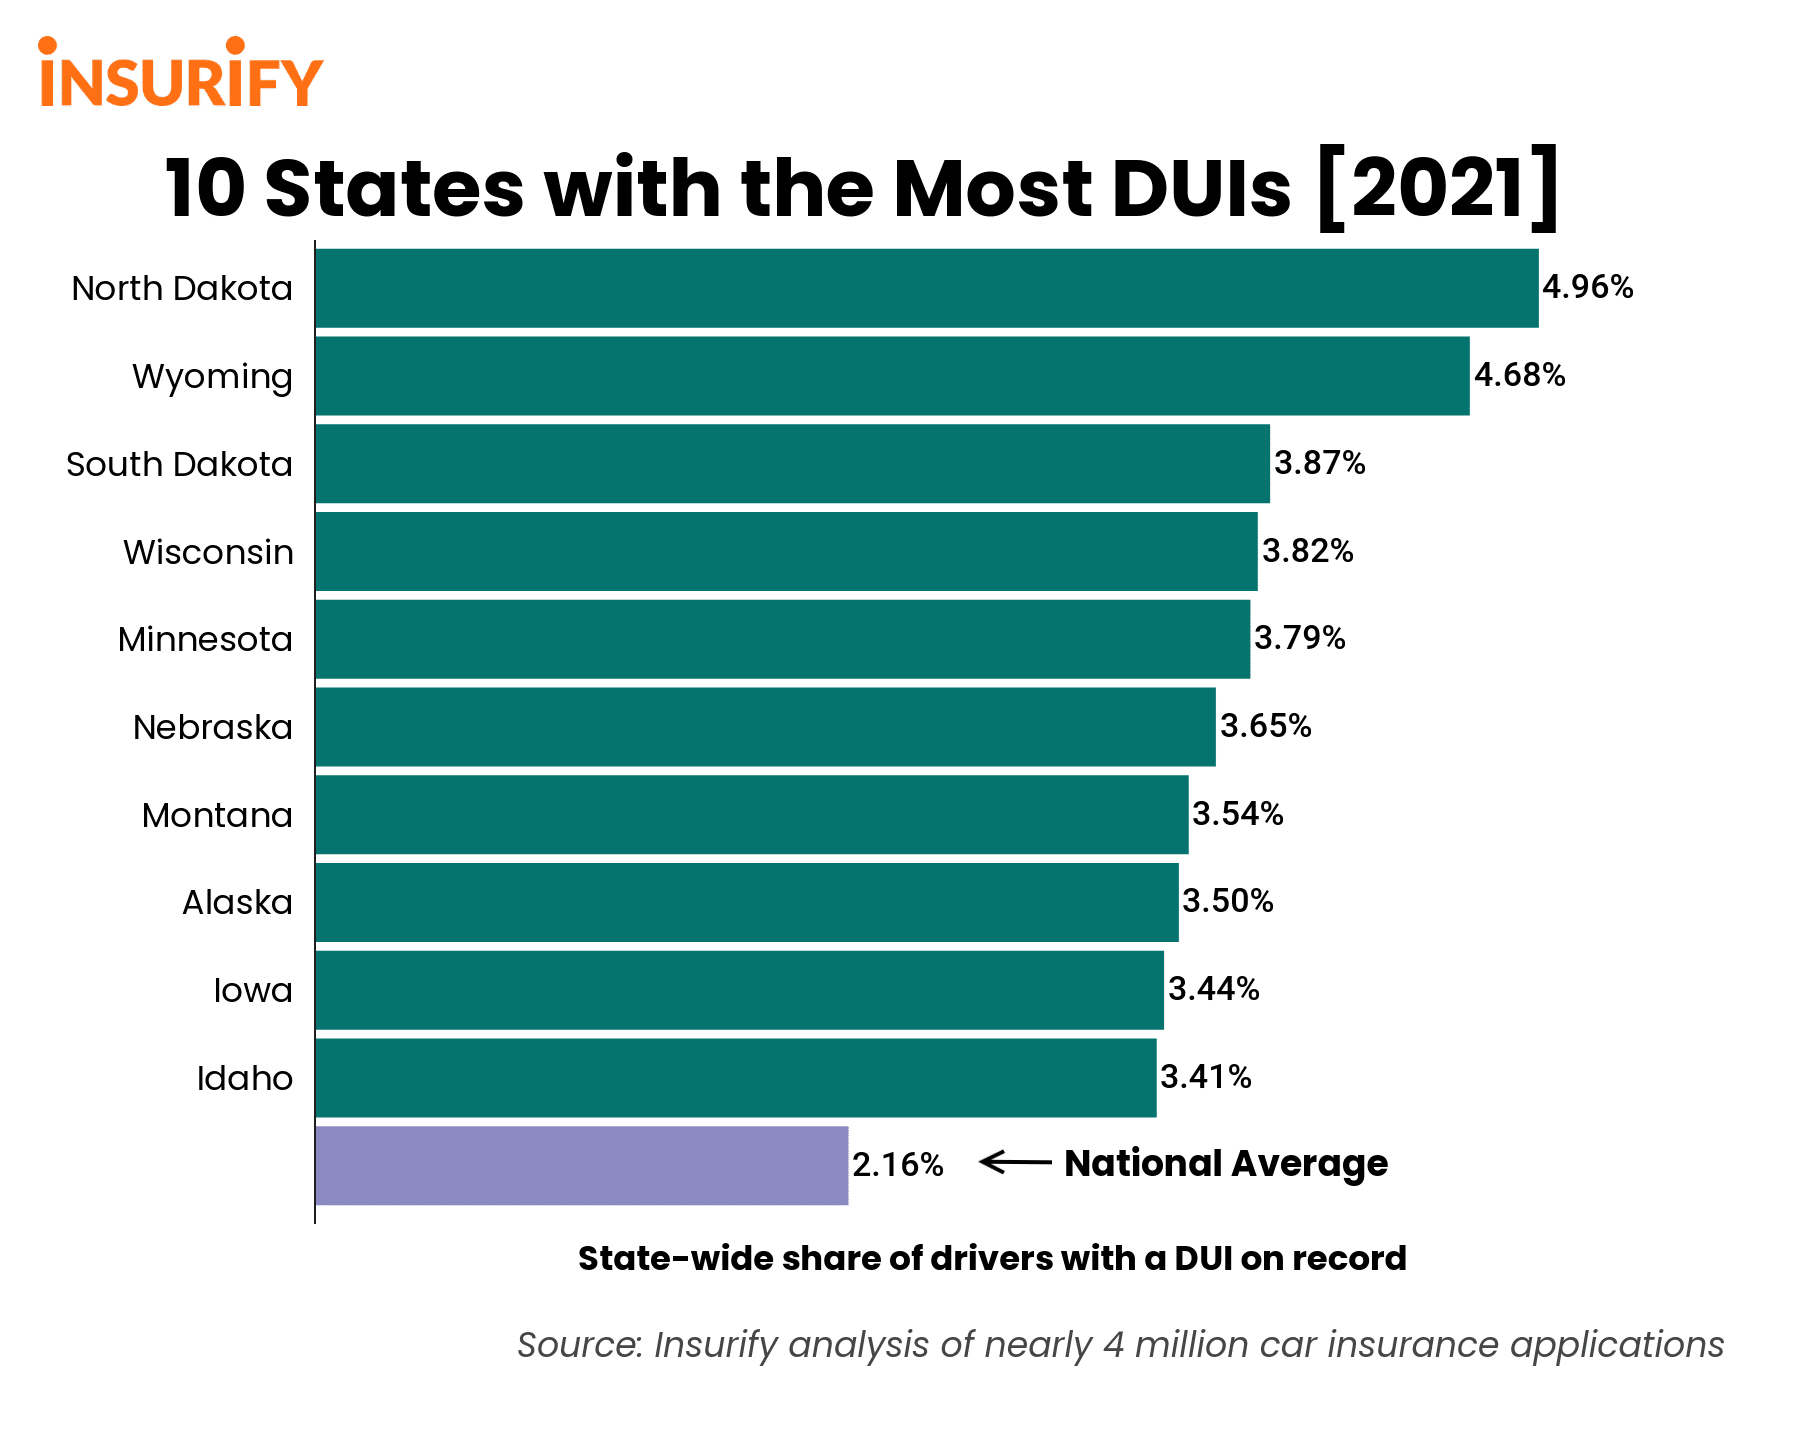 Bar graph showing the DUI rates of the 10 highest states in the nation compared to the national average in 2021.